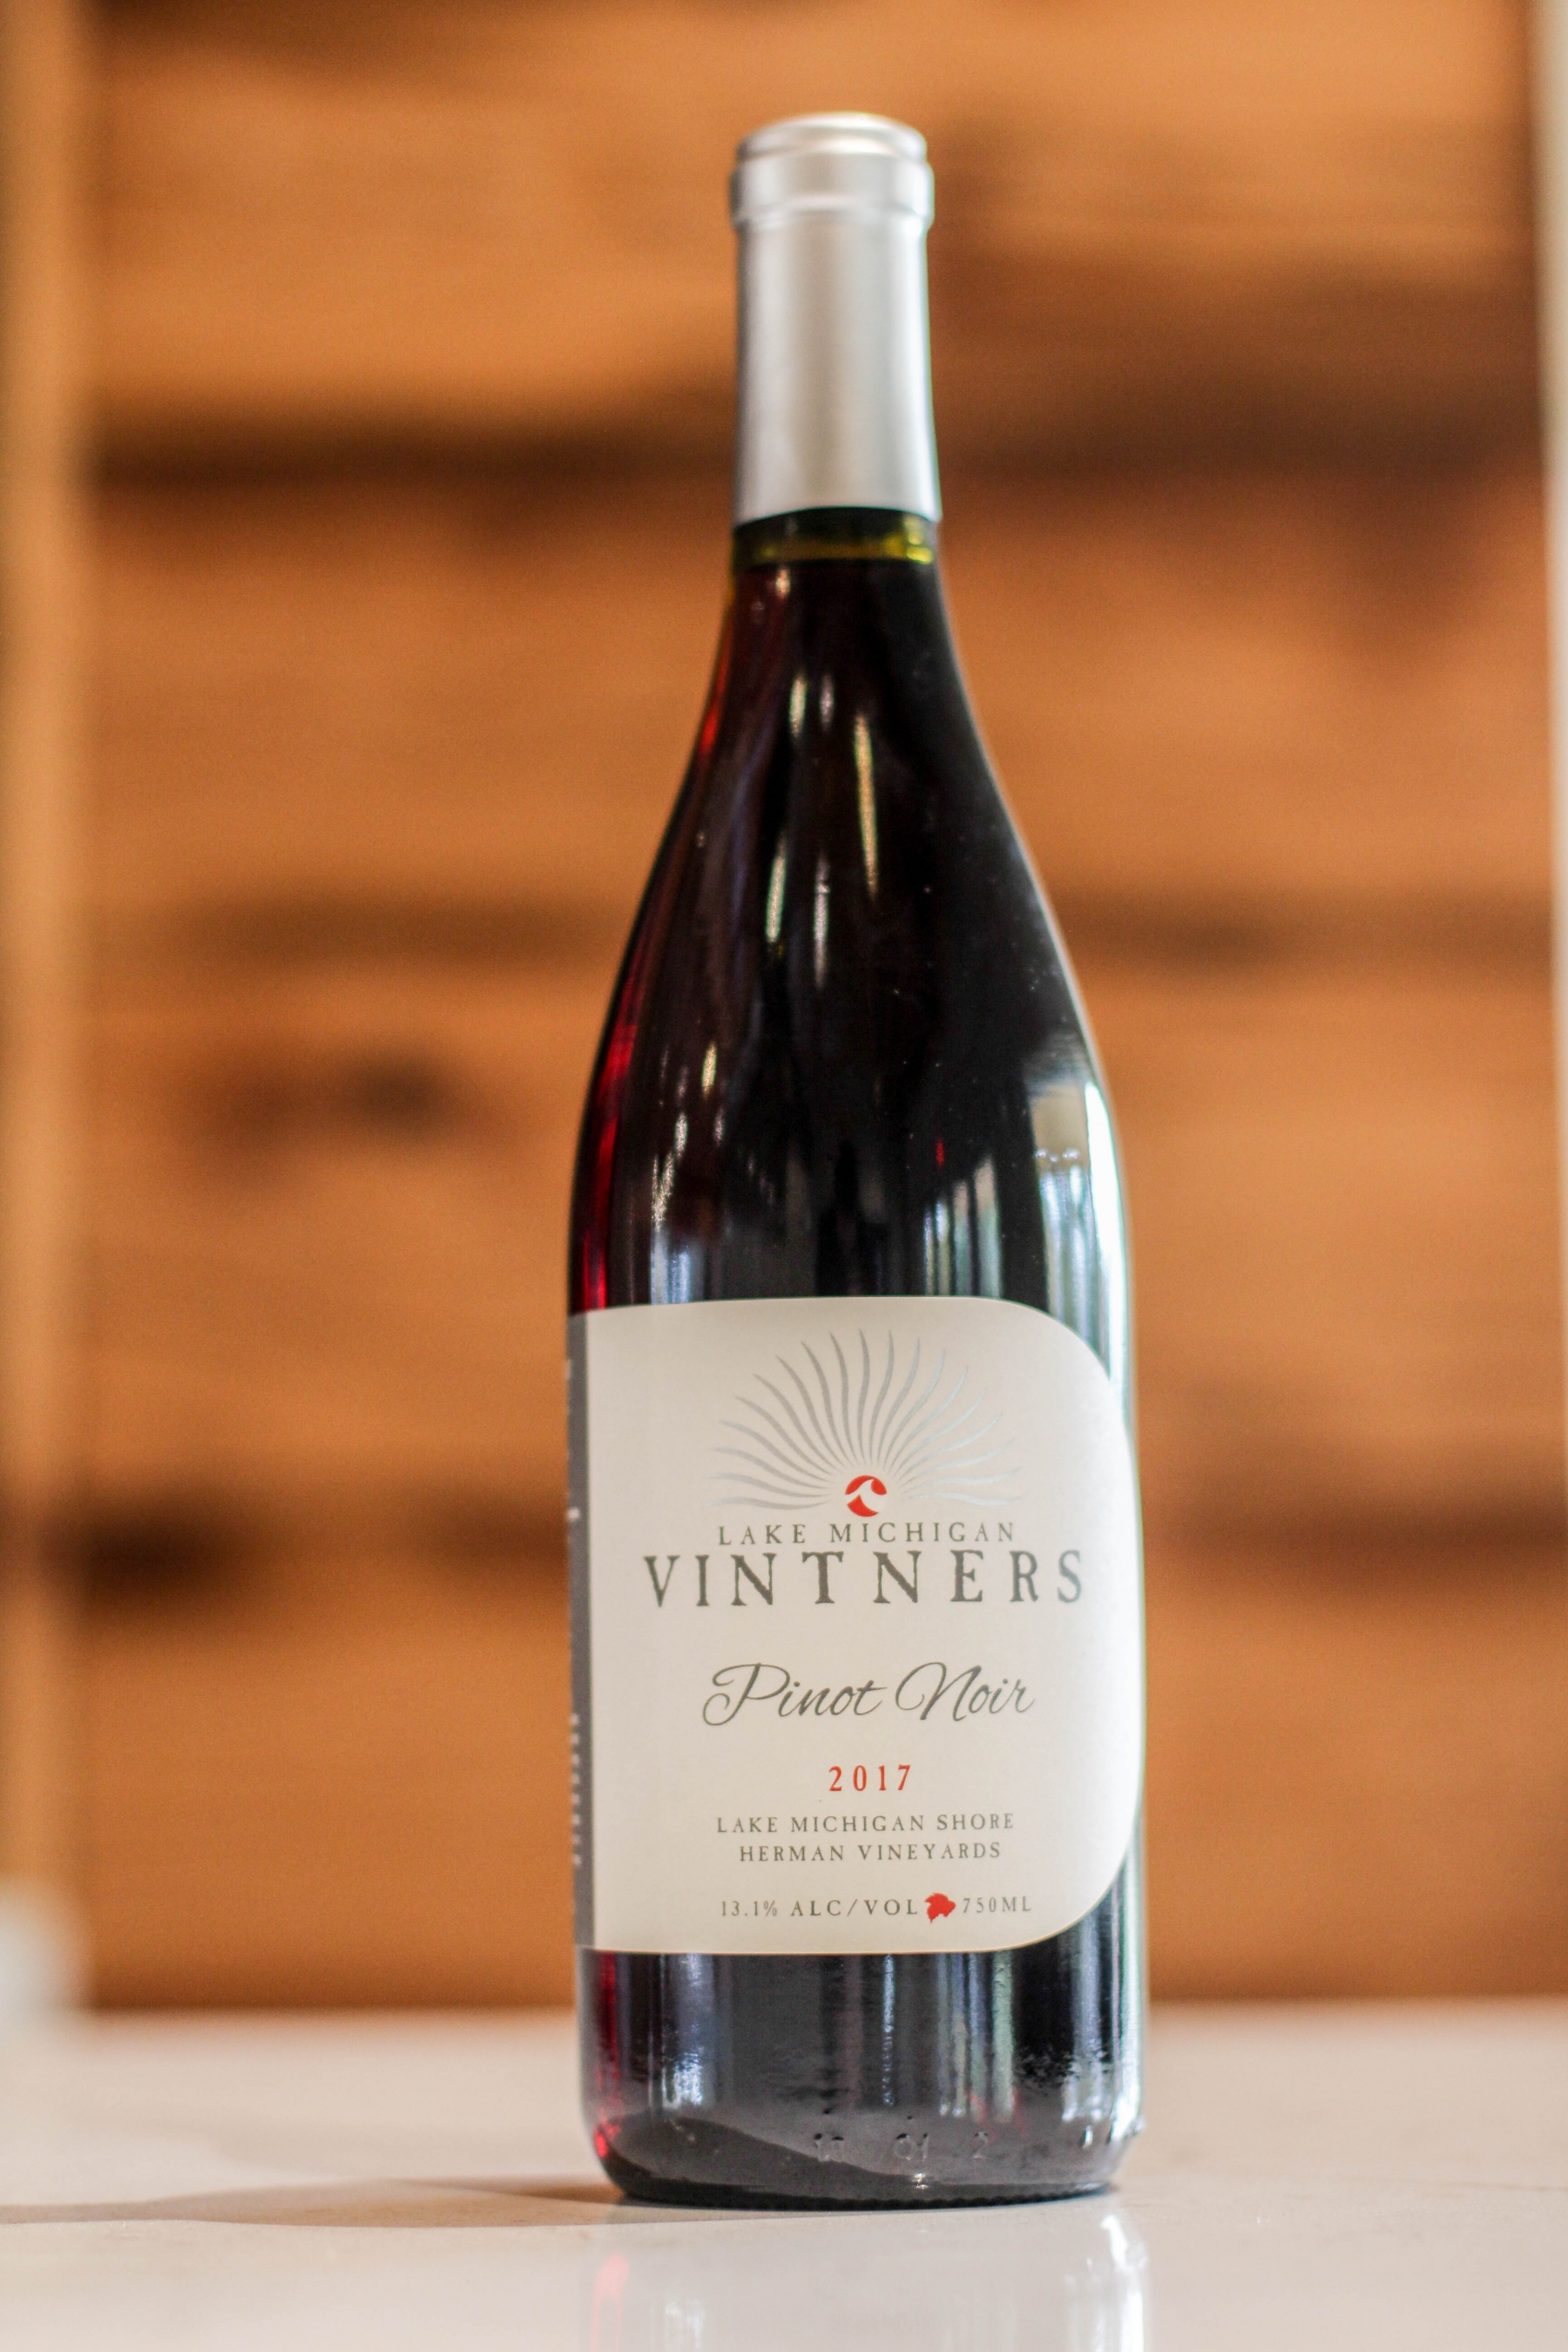 """A close-up of a deep burgundy bottle of Pinot Noir, with a white and silver label reading """"Lake Michigan Vintners, Pinot Noir, 2017. Lake Michigan Shore, Herman Vineyards. 13.1% alcohol by volume, 750mL."""" The bottle is wider and a little shorter than many wine bottles."""